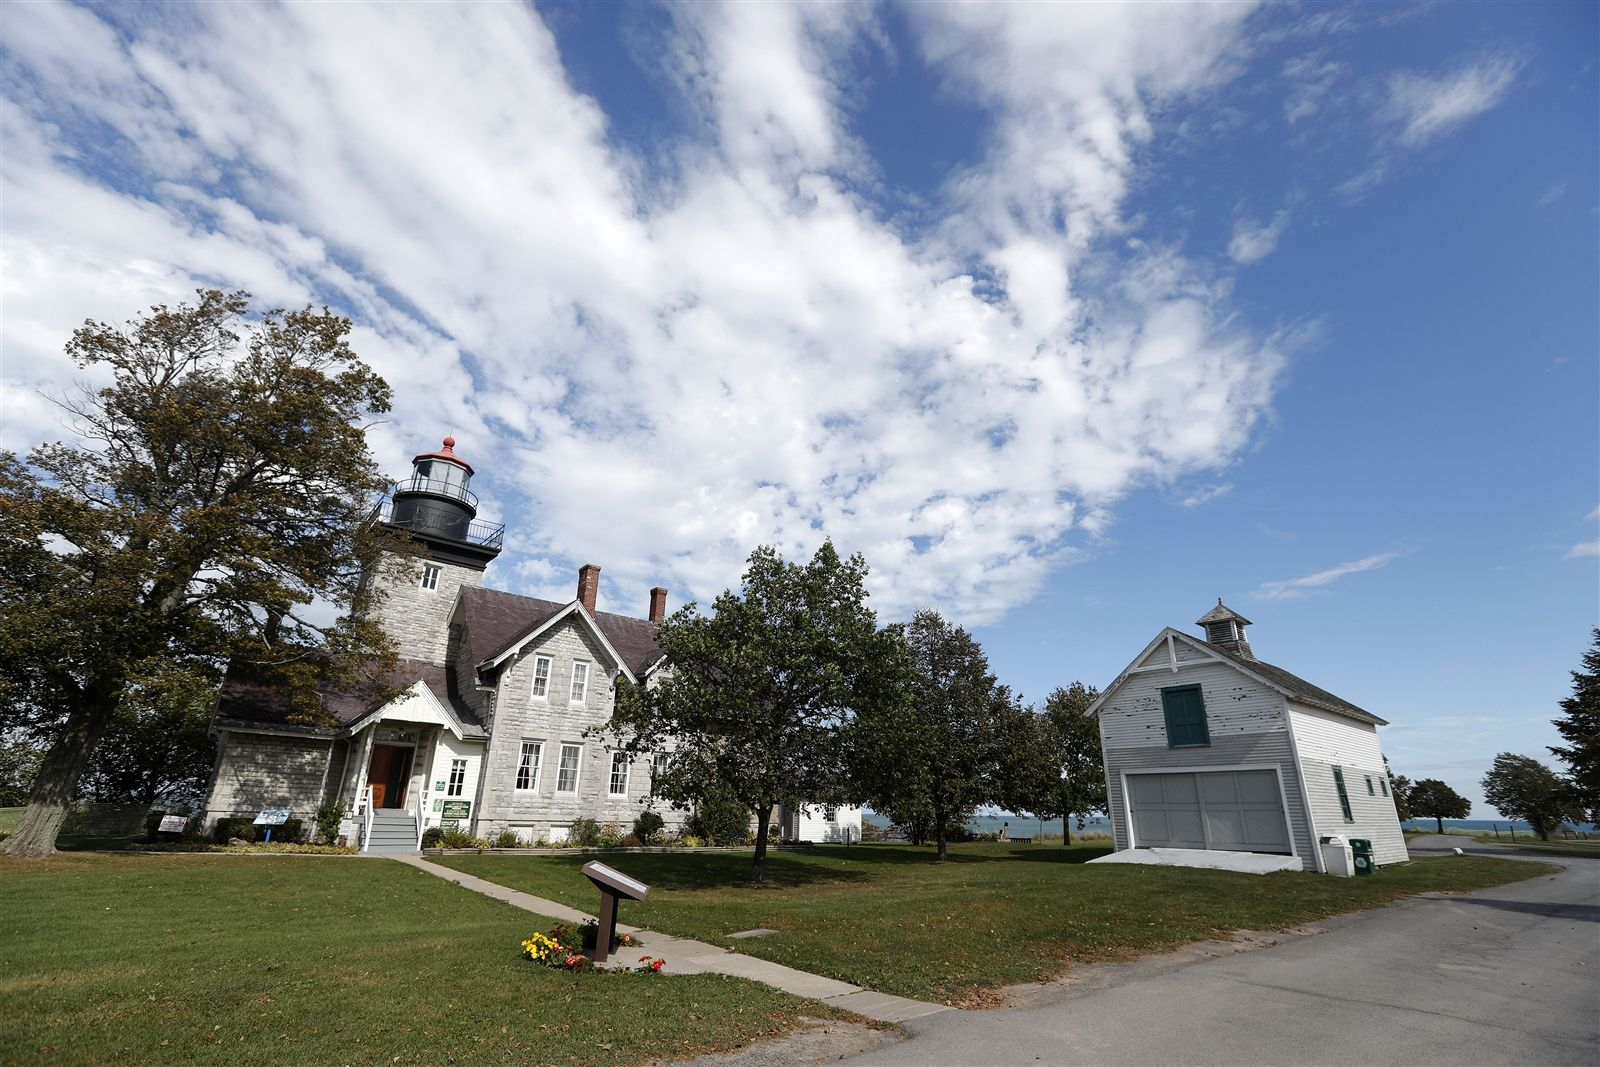 Thirty Mile Point Lighthouse was built in 1875 at the cost of $90,000. Through the centuries, there have been at least four shipwrecks on the treacherous shoals and shifting sandbar off Thirty Mile Point, so named because it is 30 miles east of the Niagara River